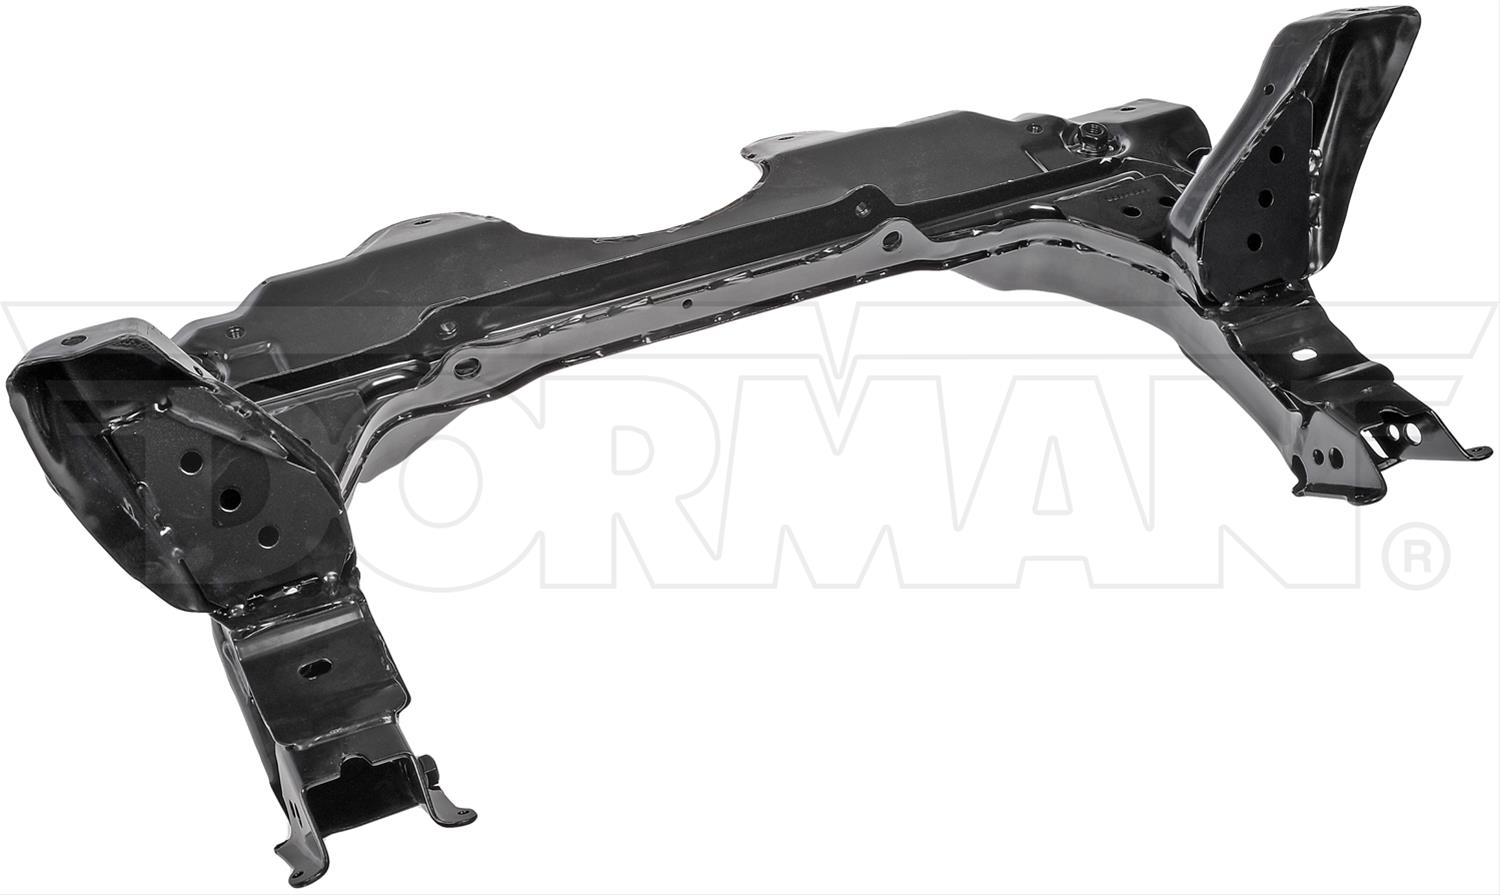 Dorman Refurbished Engine Cradle Subframes 999-002